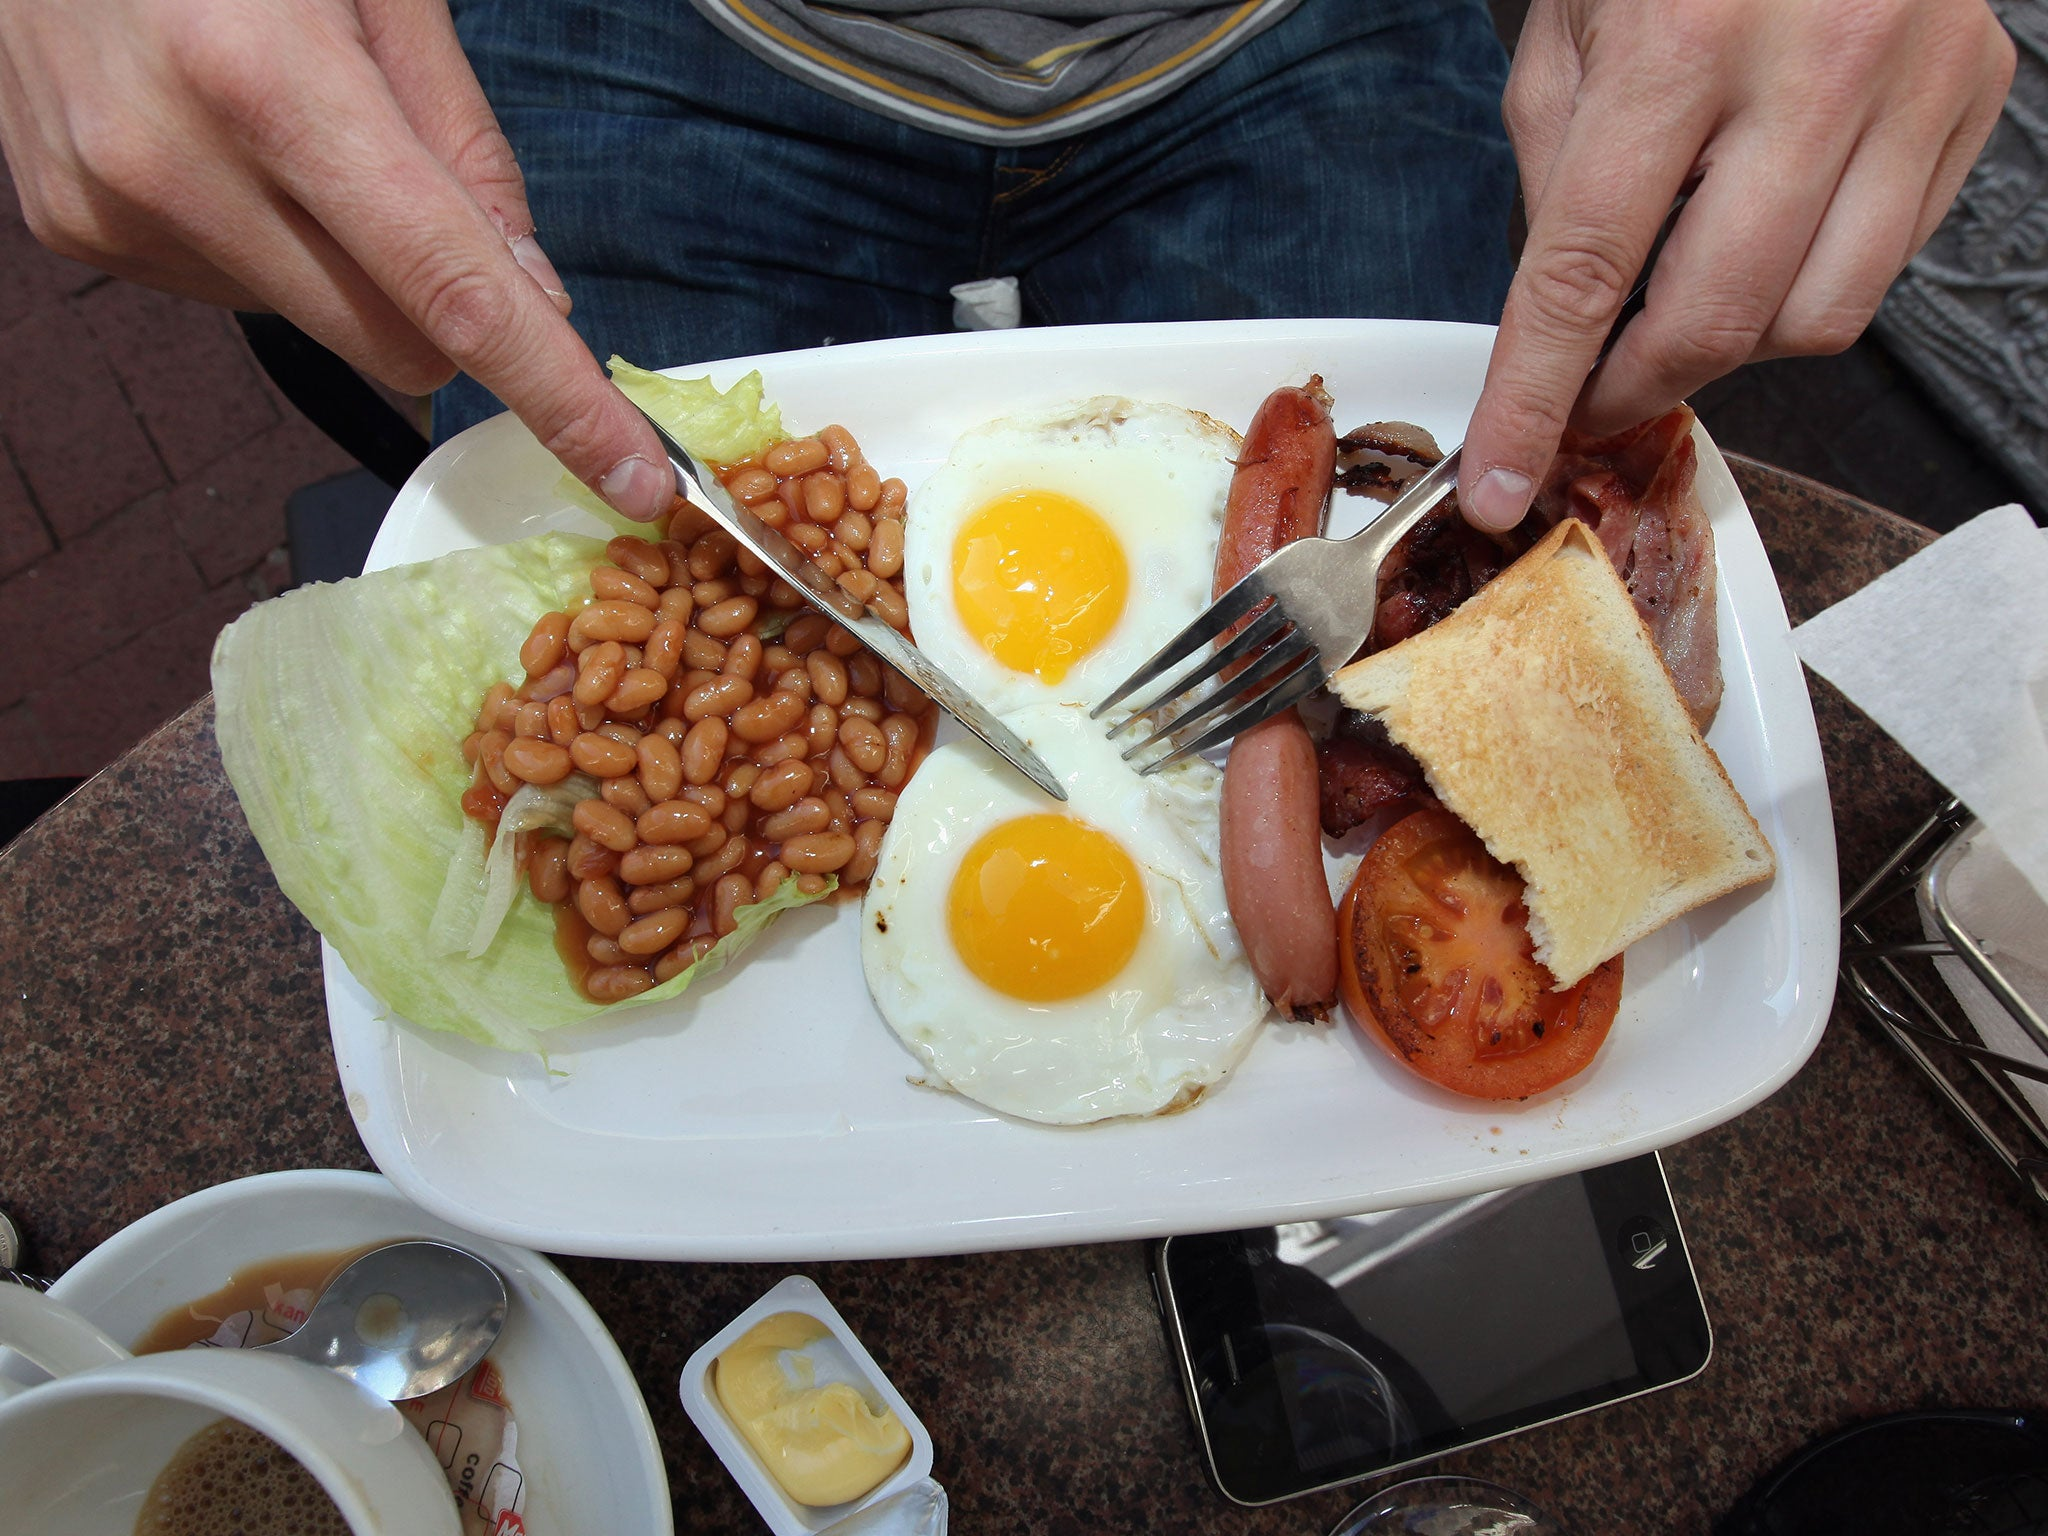 Nutritional experts reveal the UK's unhealthiest high street breakfasts